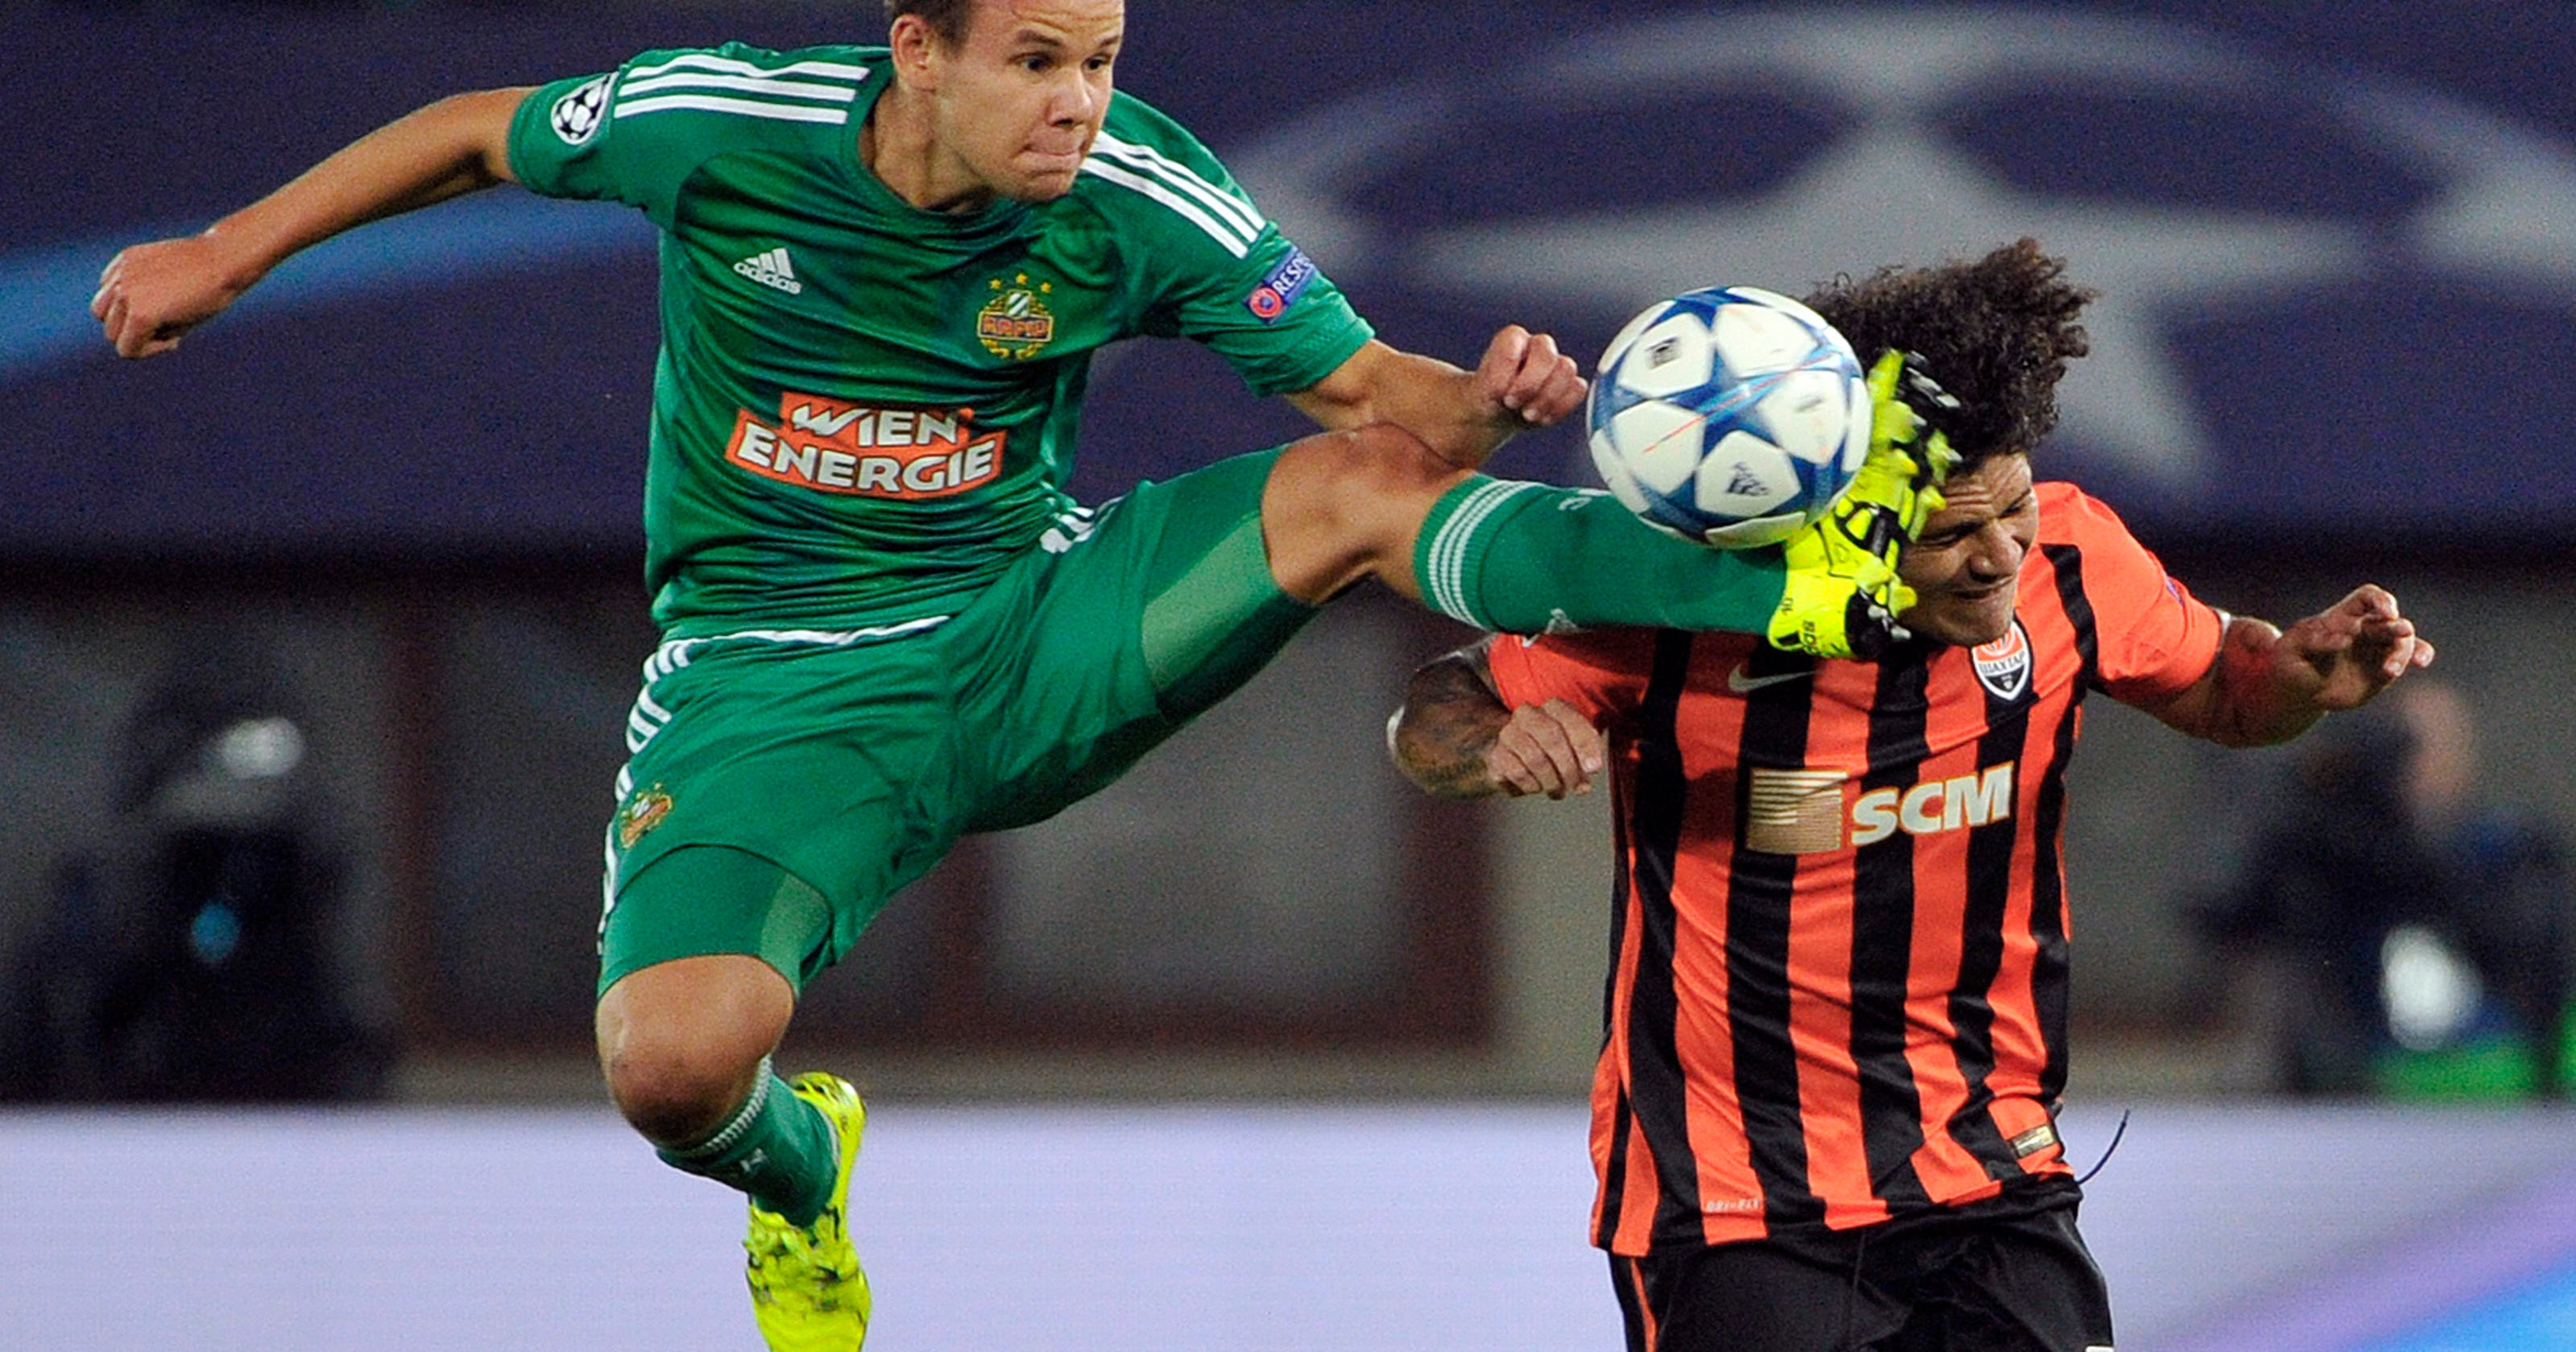 256d21593f Shakhtar beats Rapid Vienna 1-0 in Champions League playoff